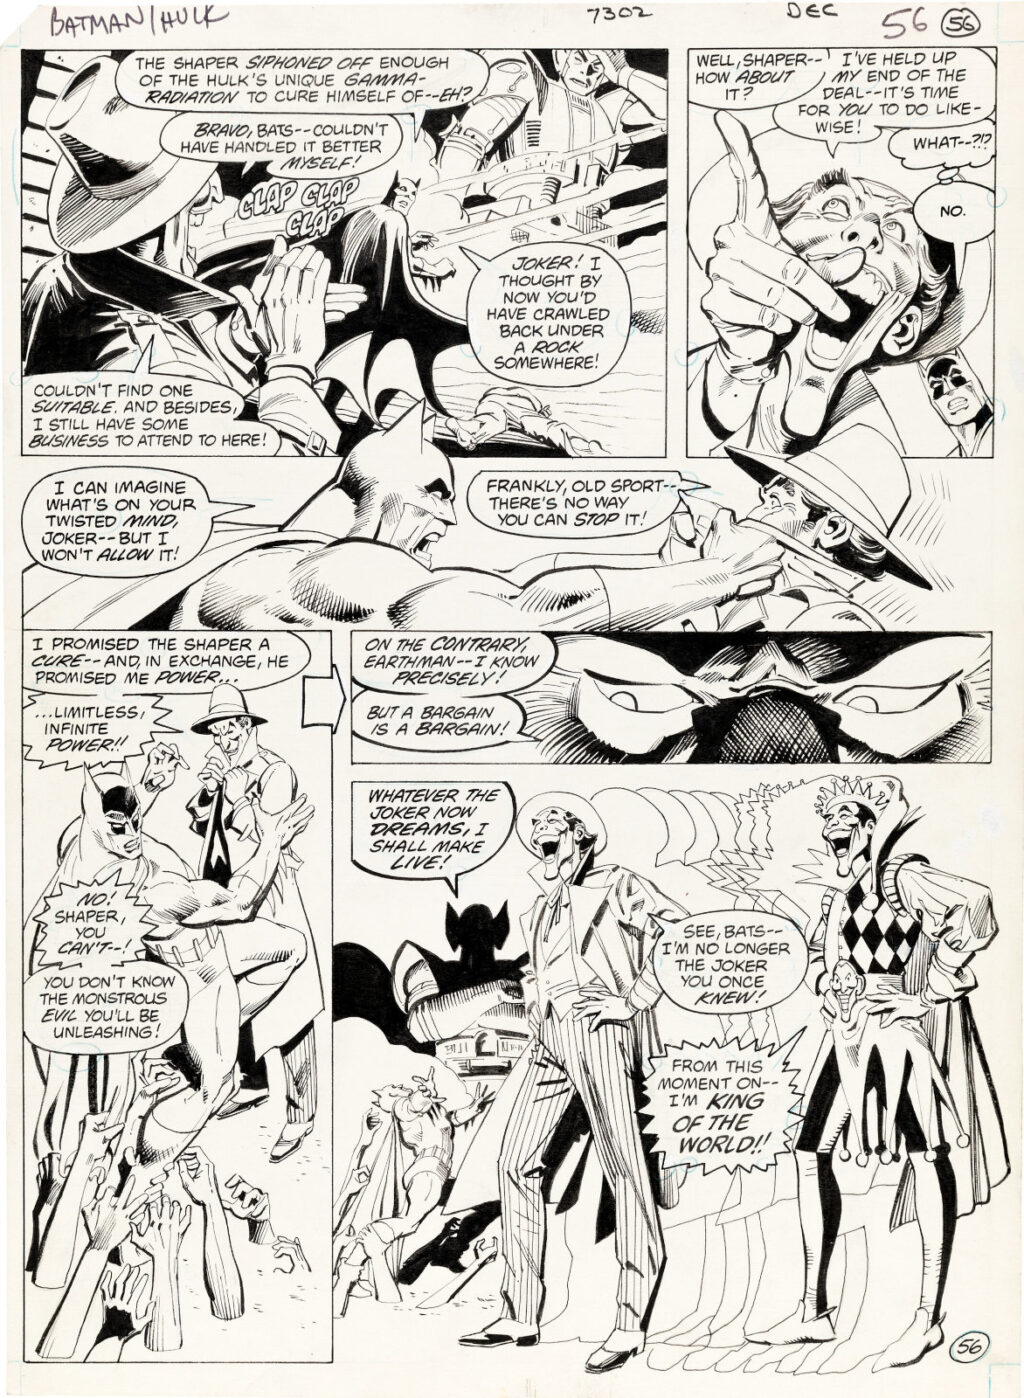 DC Special Series issue 27 page 56 by Jose Luis Garcia Lopez and Dick Giordano